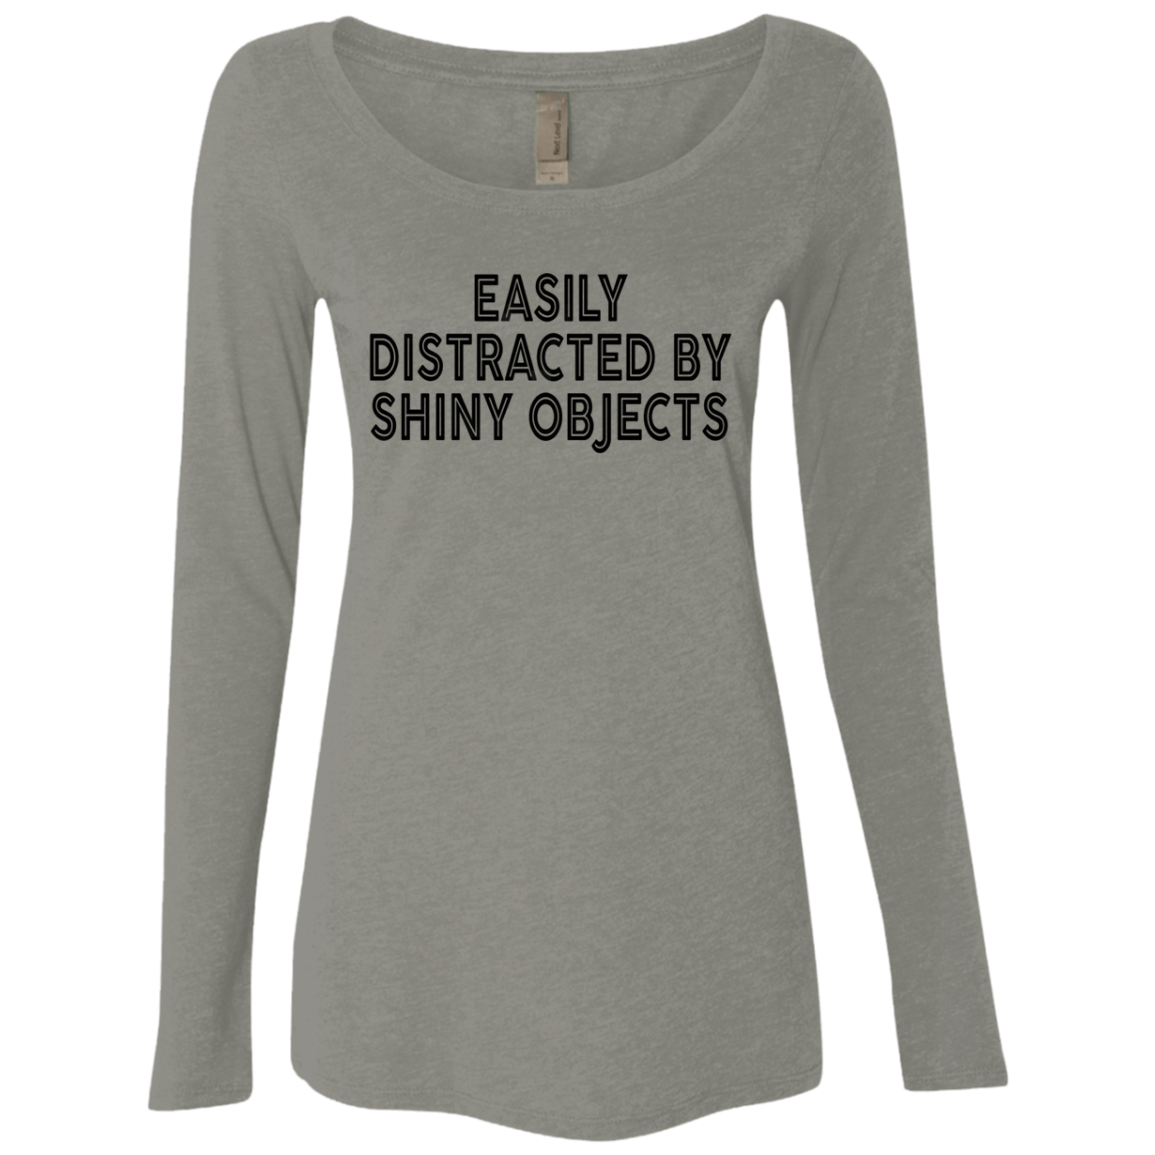 Easily distracted By Shiny Onjects Women's Long Sleeve Tee